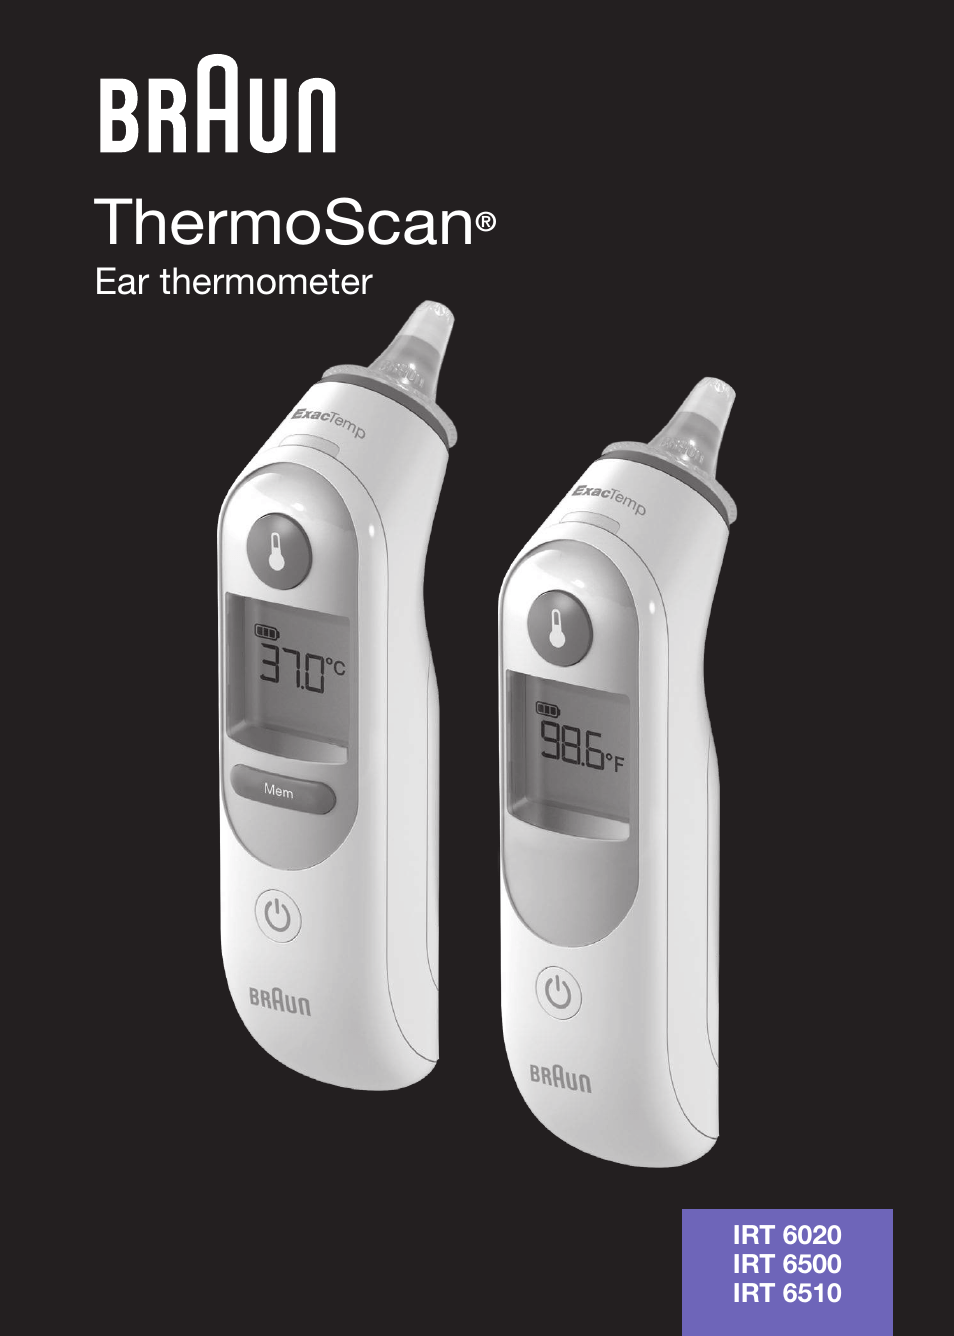 Braun Thermoscan Irt 6510 User Manual 20 Pages Also